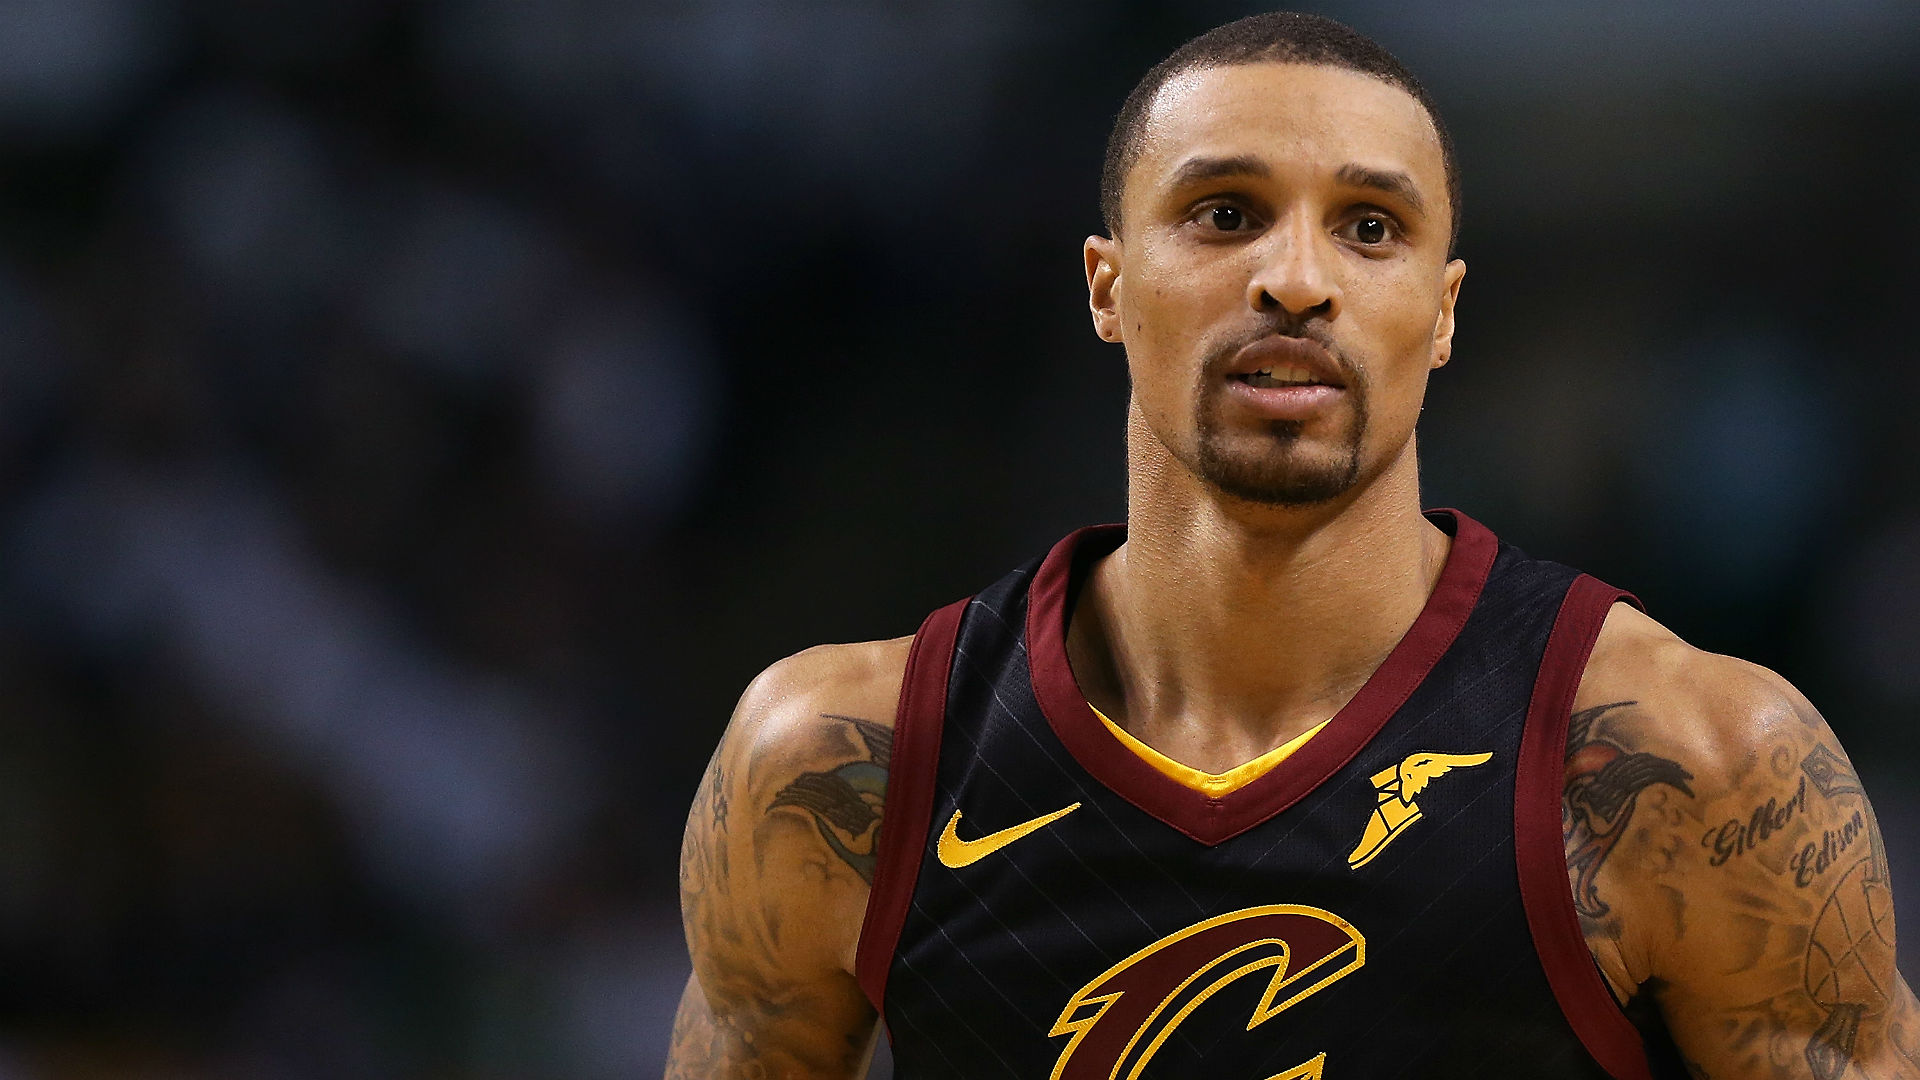 NBA trade news: Bucks deal for George Hill in 5-player trade